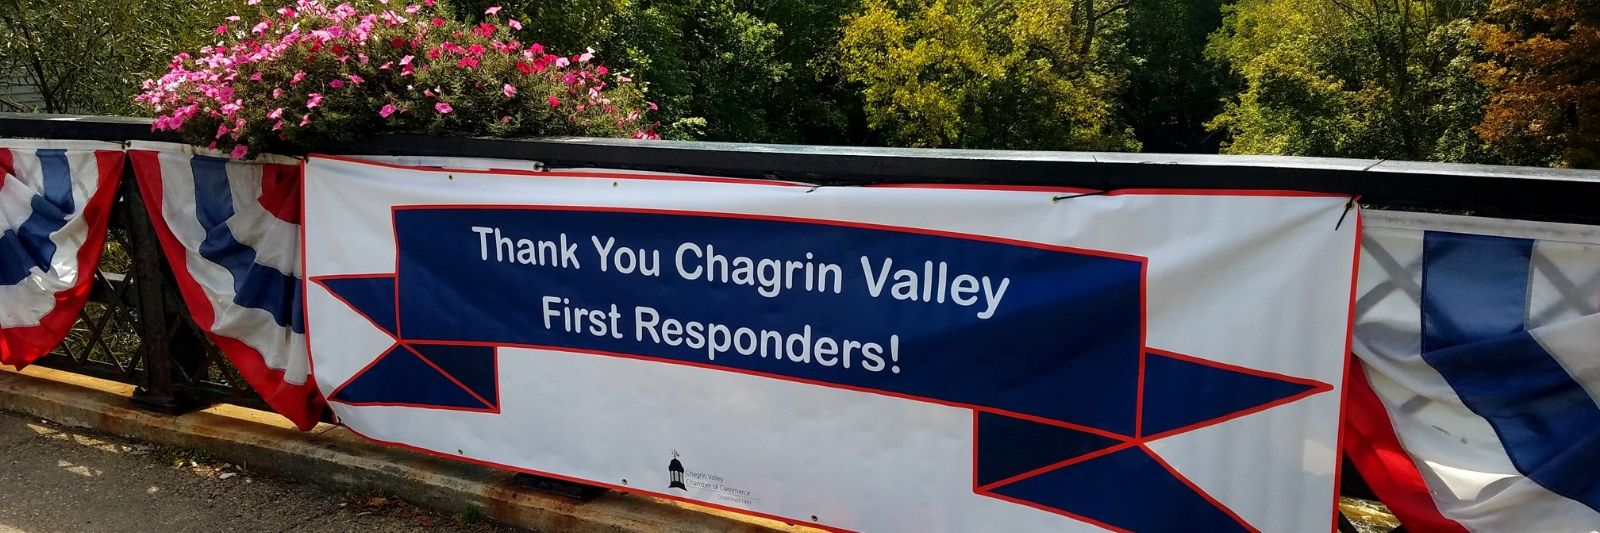 Chagrin-Valley-Chamber-Board-of-Directors-(4).jpg